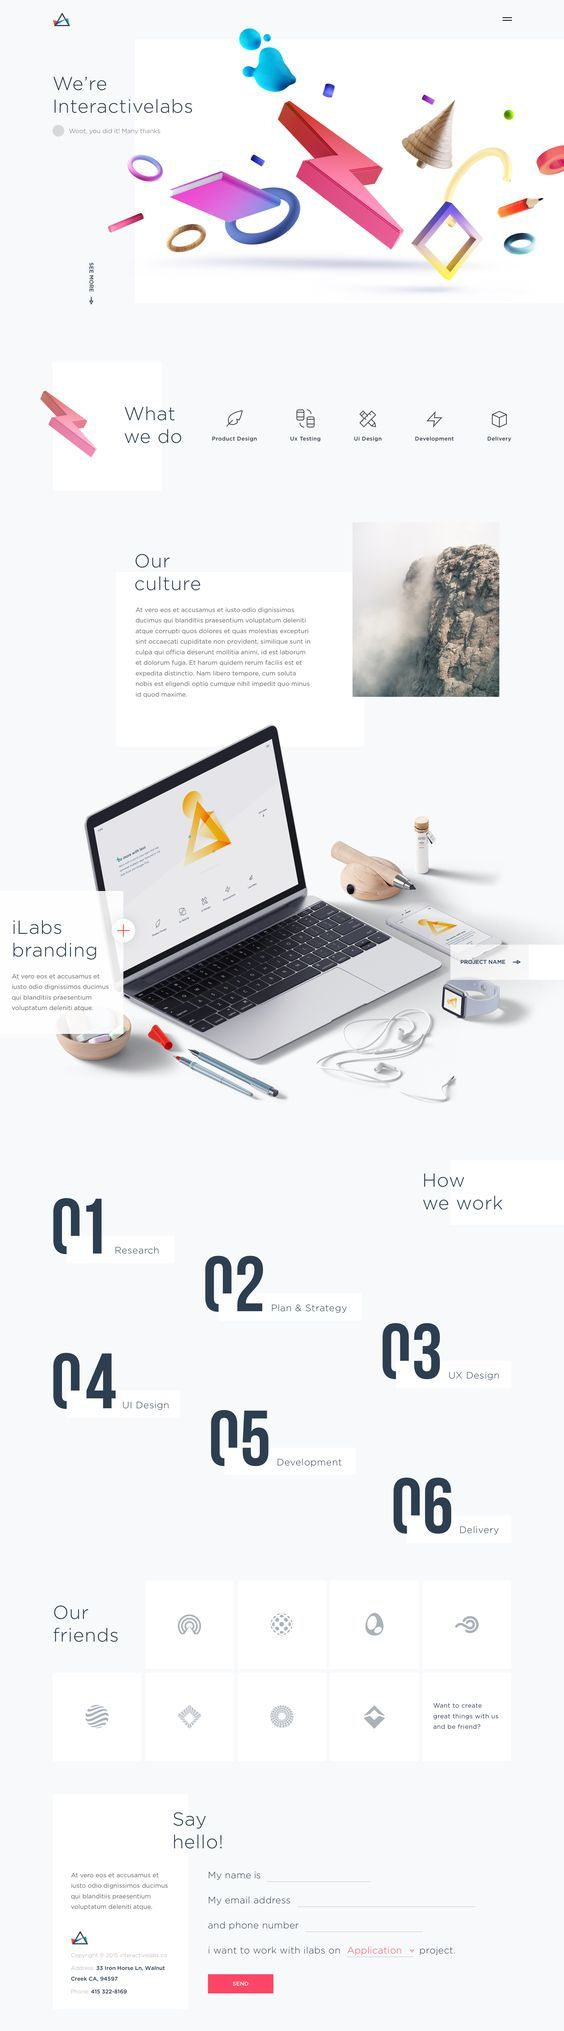 Hoang Nguyen- Sai Gon Hoang is an UX/UI designer who has a clean and minimal visual approach. His designs include a lot of motion as well as graphic experimentations. He has been working on projects that involve a lot of customer interactions for corporates and business firms.: